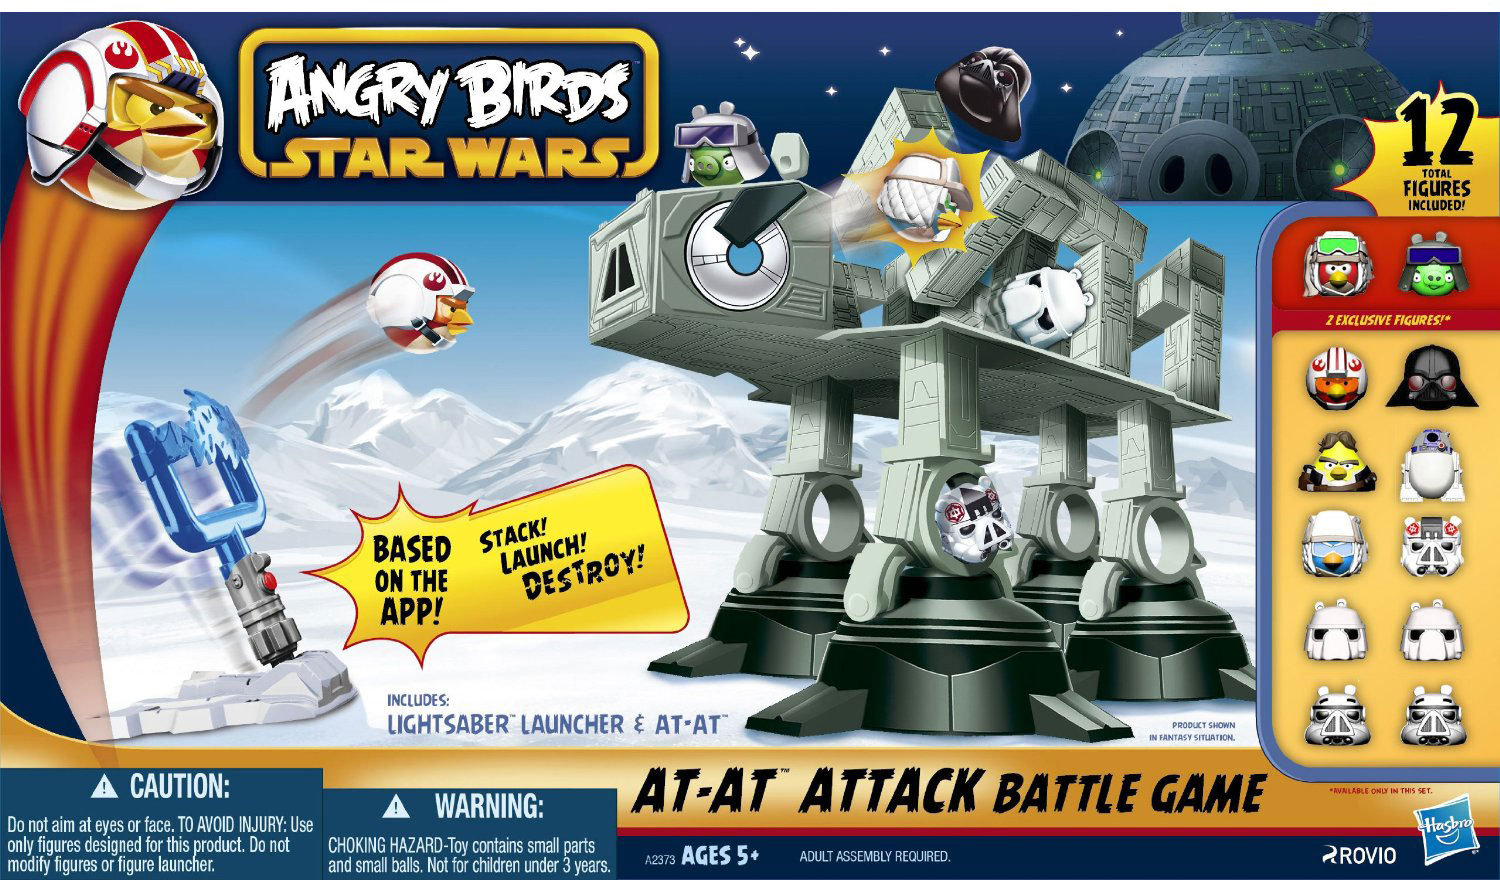 Angry birds star wars nouvelles informations star wars - Coloriage angry bird star wars ...